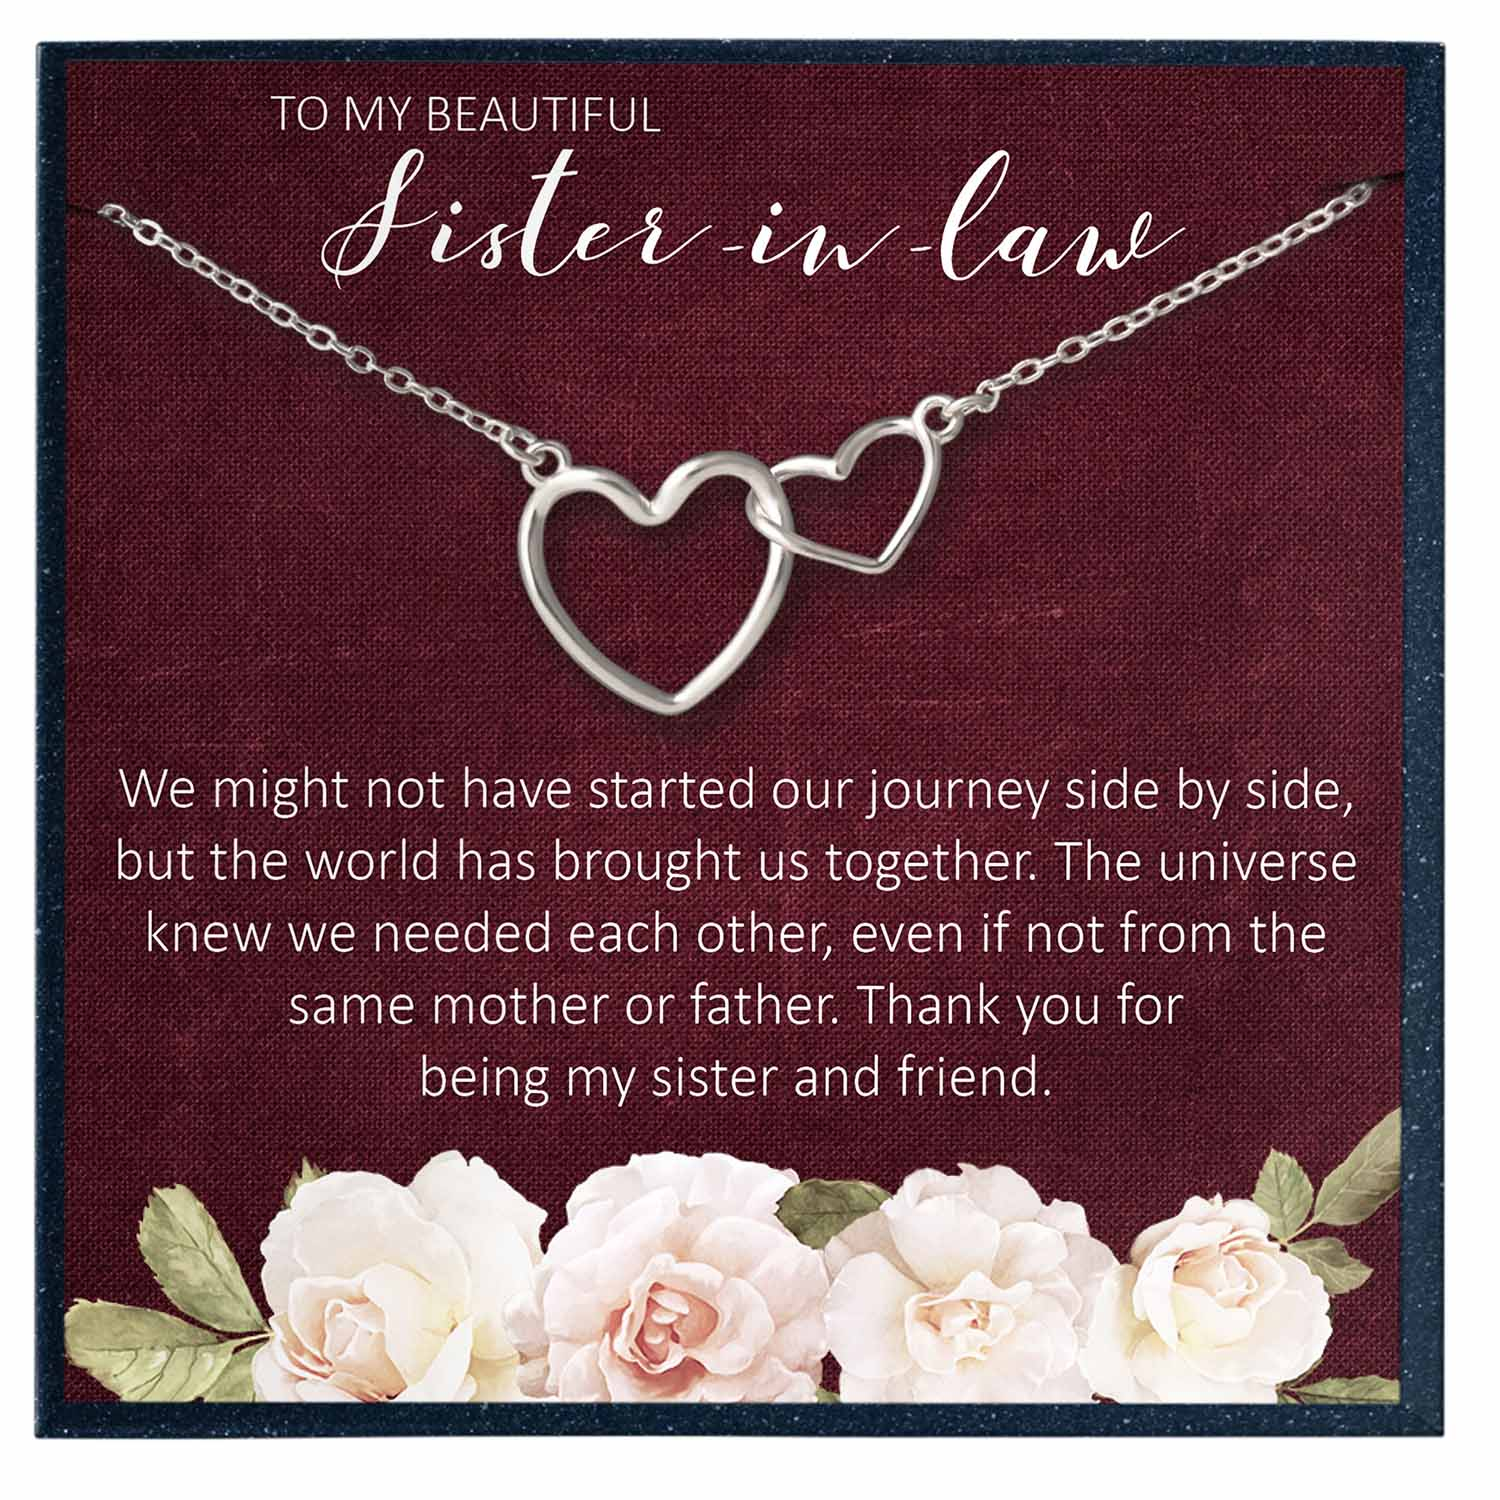 Sister in Law Wedding Gift from Sister in Law, Sister in Law Necklace